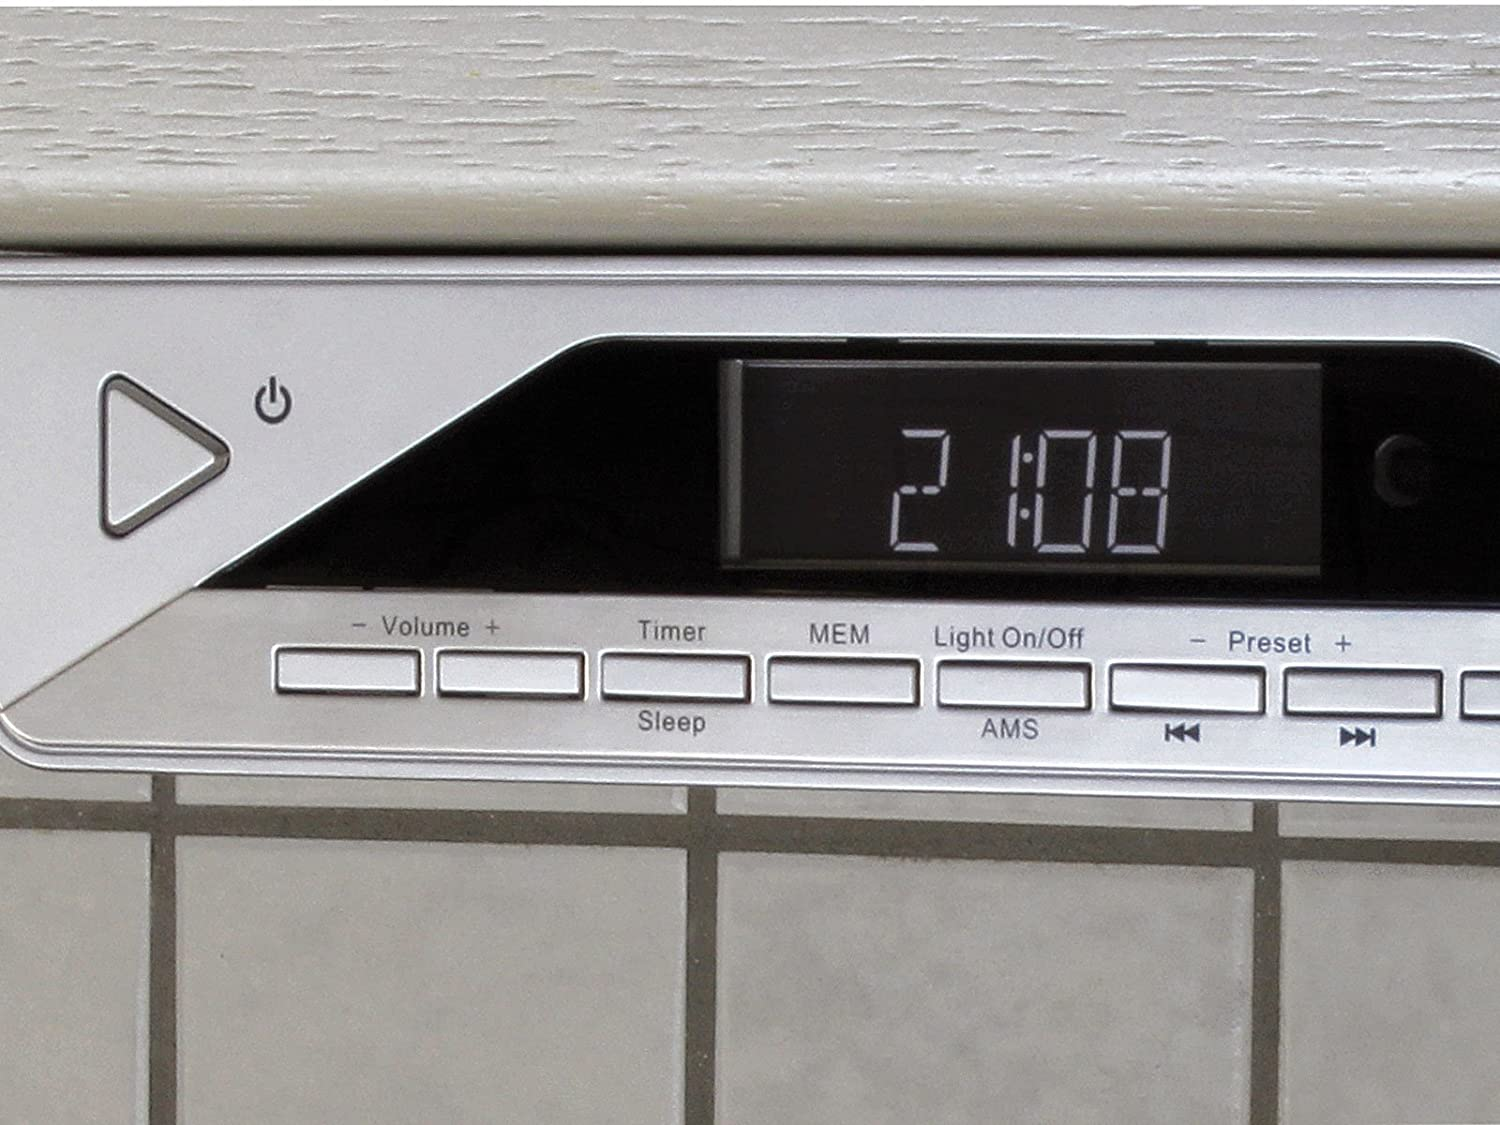 Soundmaster Ur2040 Under Cabinet Fm Dab Bluetooth Kitchen Radio